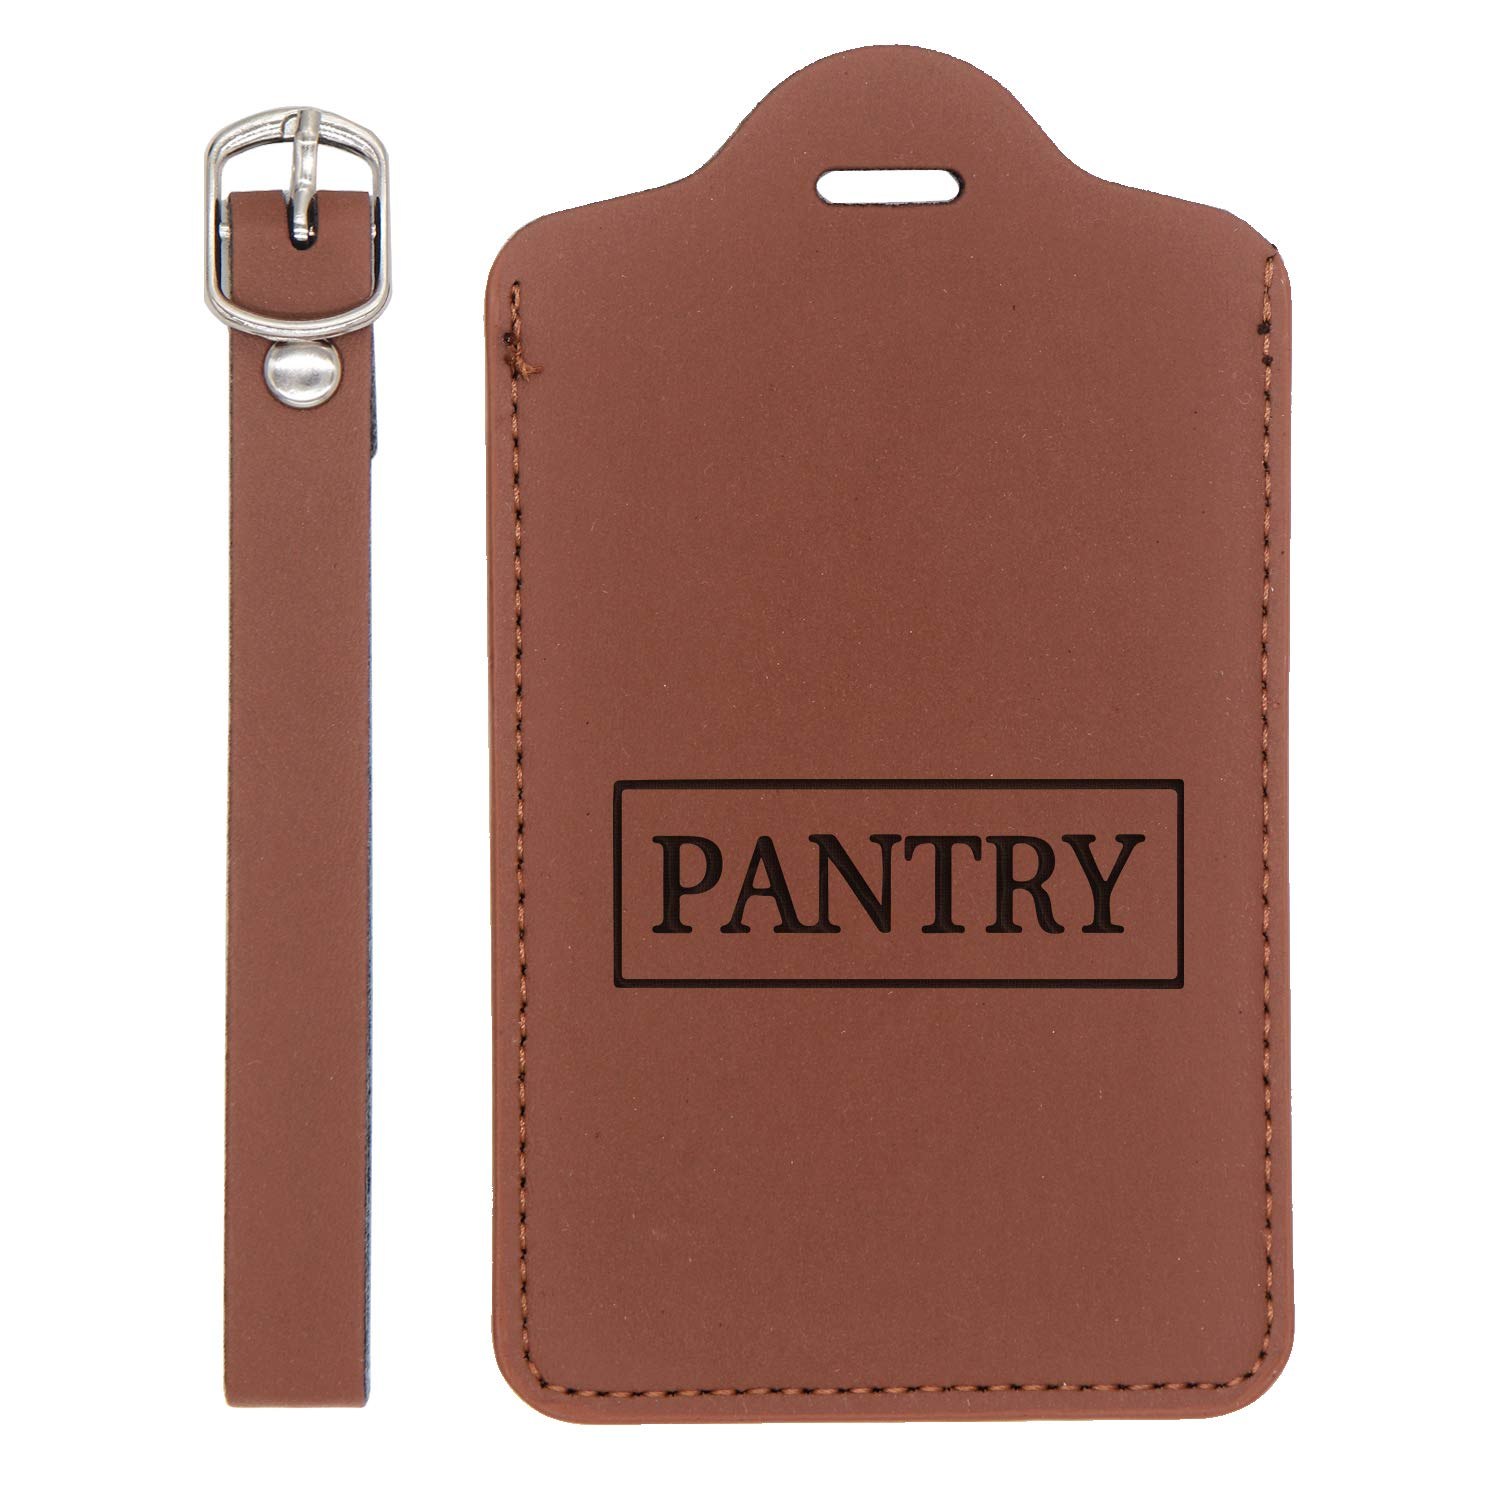 Handcrafted By Mastercraftsmen - United States Standard Pantry Door Kitchen 2 Engraved Synthetic Pu Leather Luggage Tag London Tan - Set Of 2 For Any Type Of Luggage